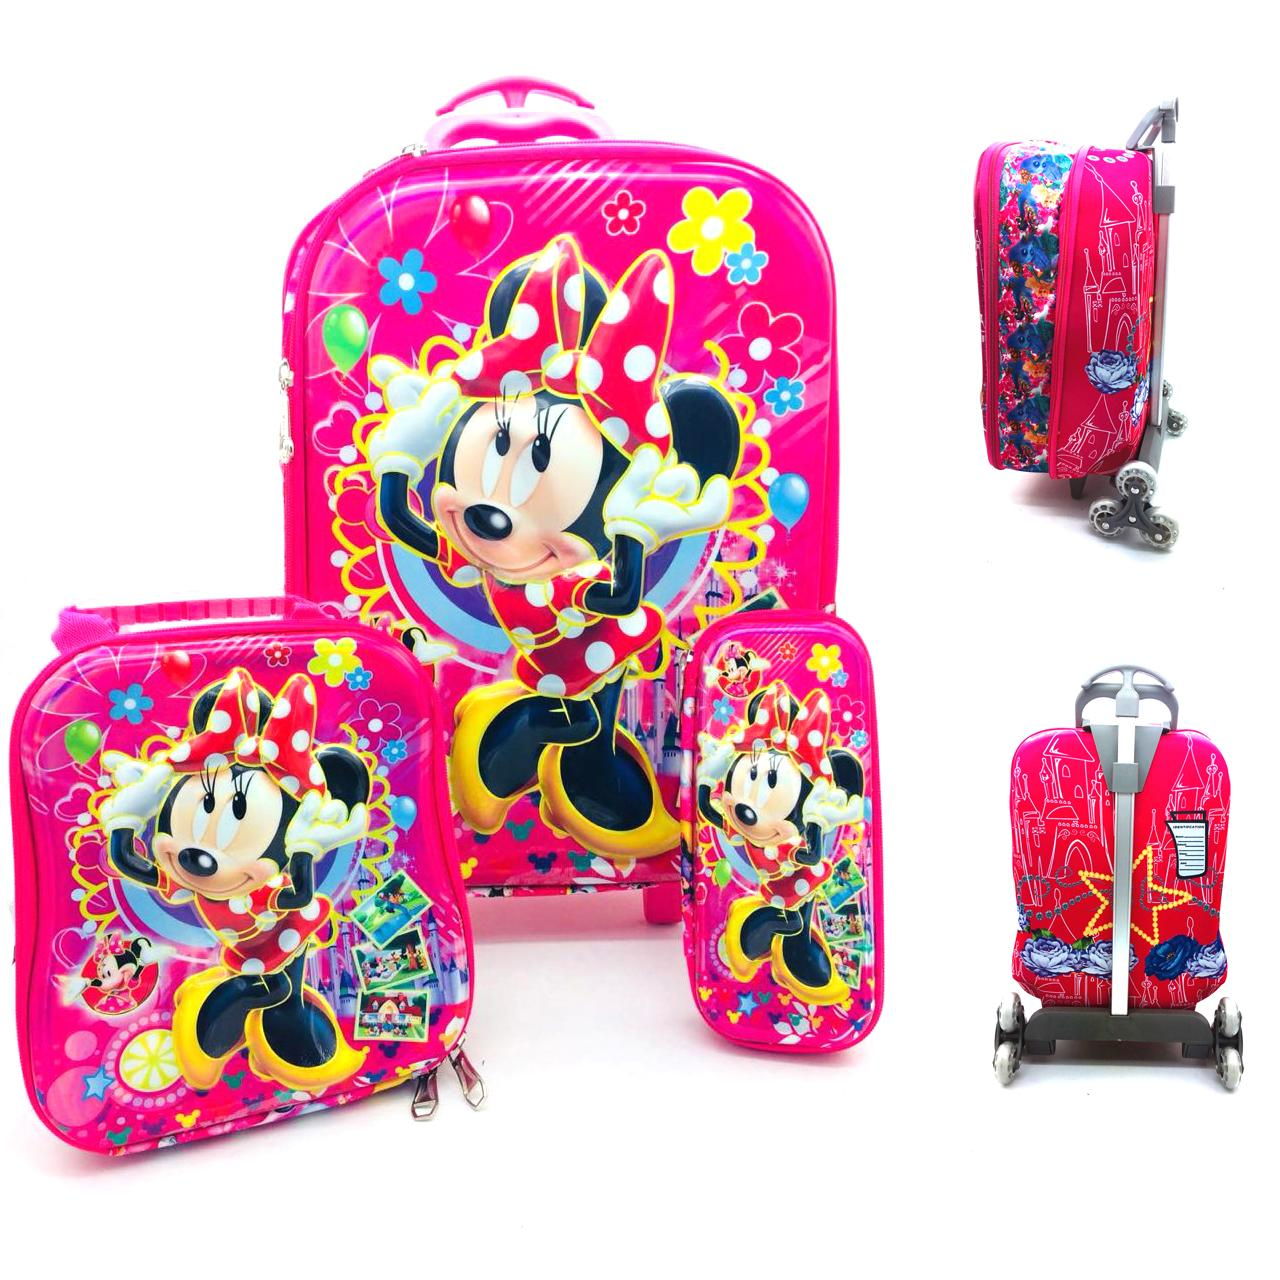 be3178f0960d Abby Shi Kids 2 Zipper Girls Boys 6D 3 Piece Luggage Trolley Wheel Set  Cabin Suitcase